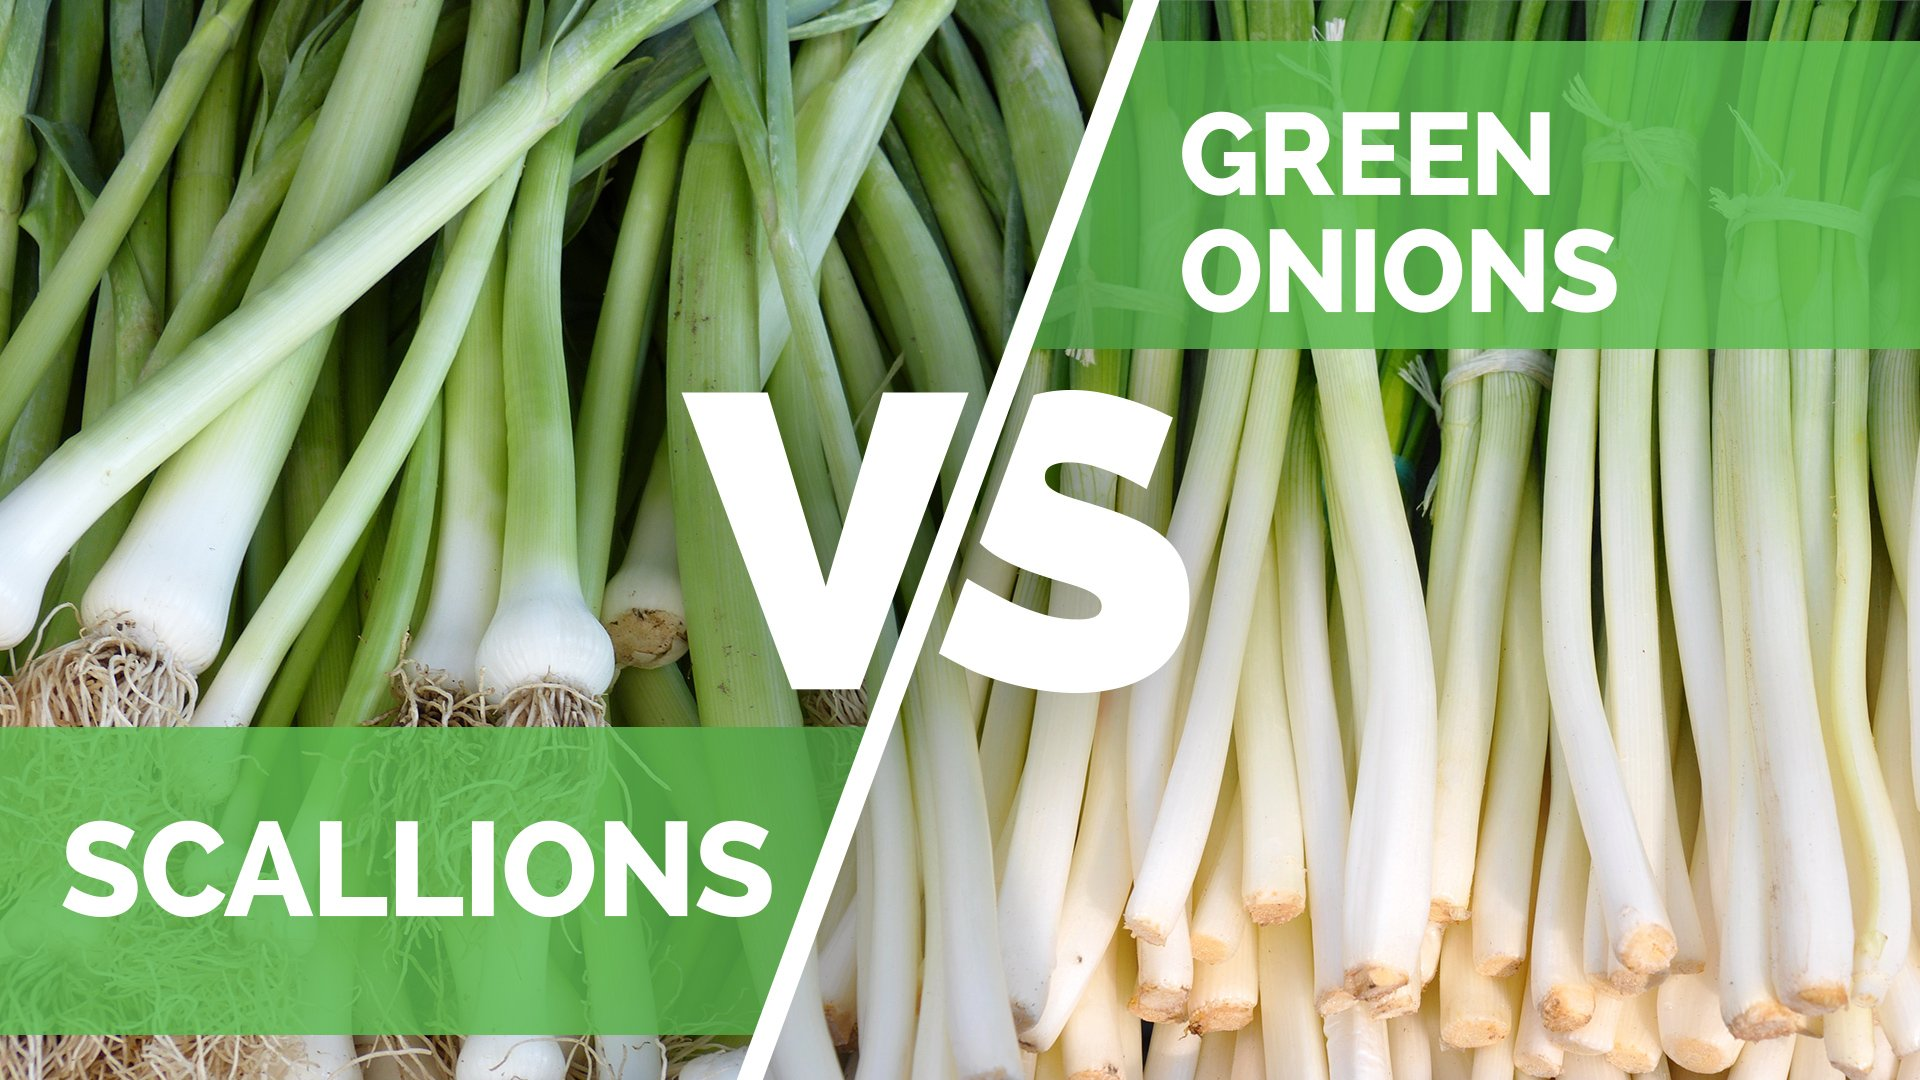 scallions vs green onion - what is the difference